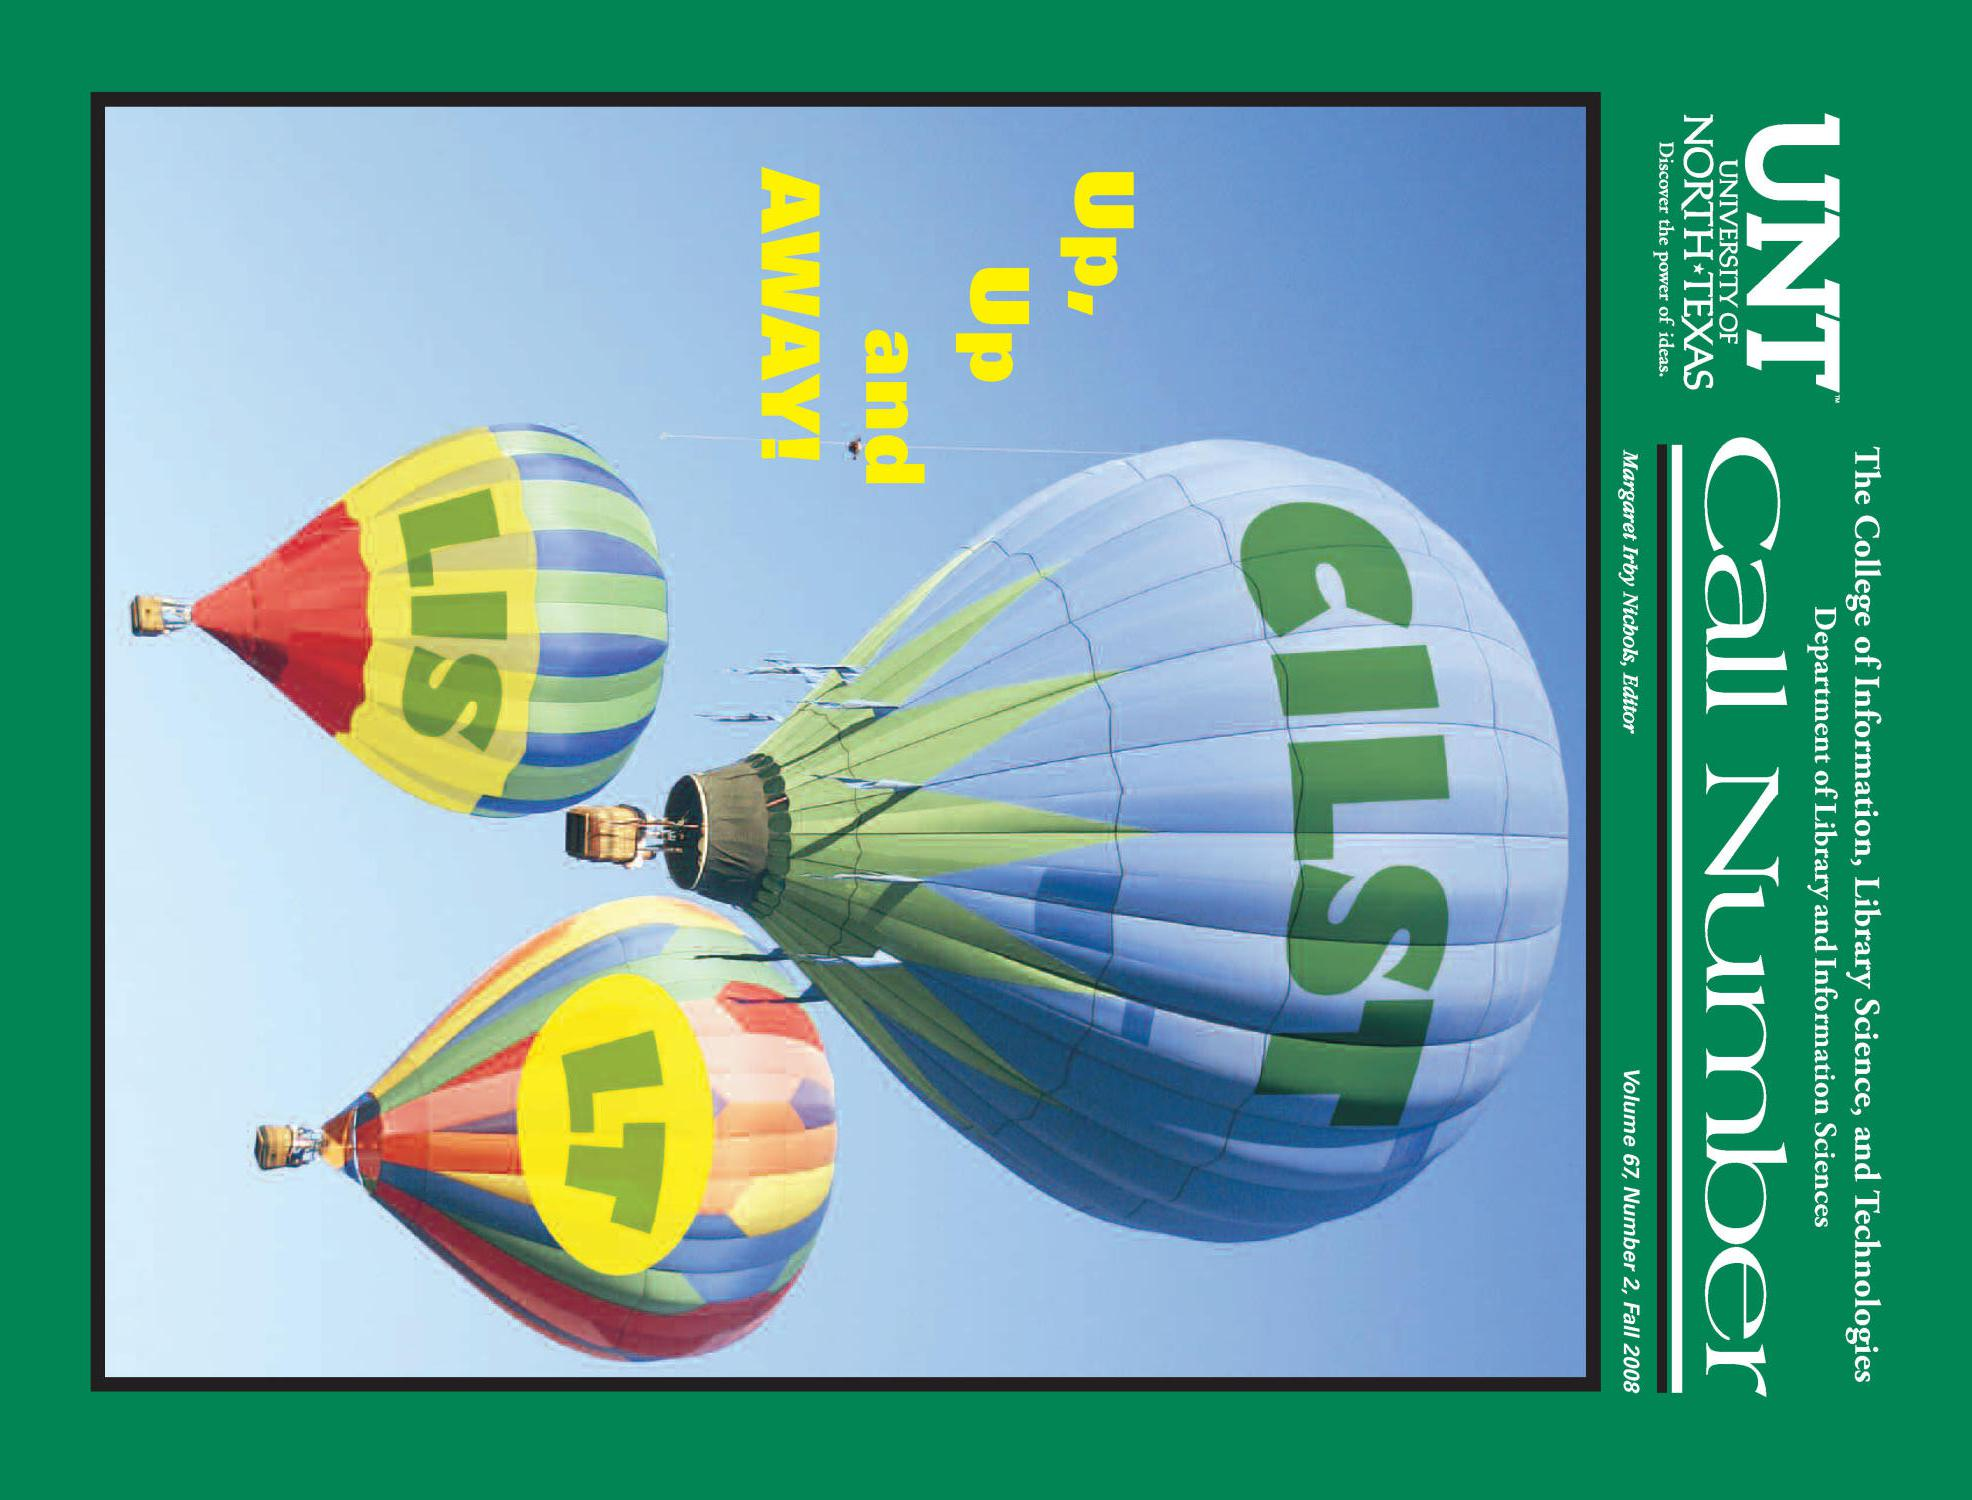 Call Number, Volume 67, Number 2, Fall 2008                                                                                                      Front Cover